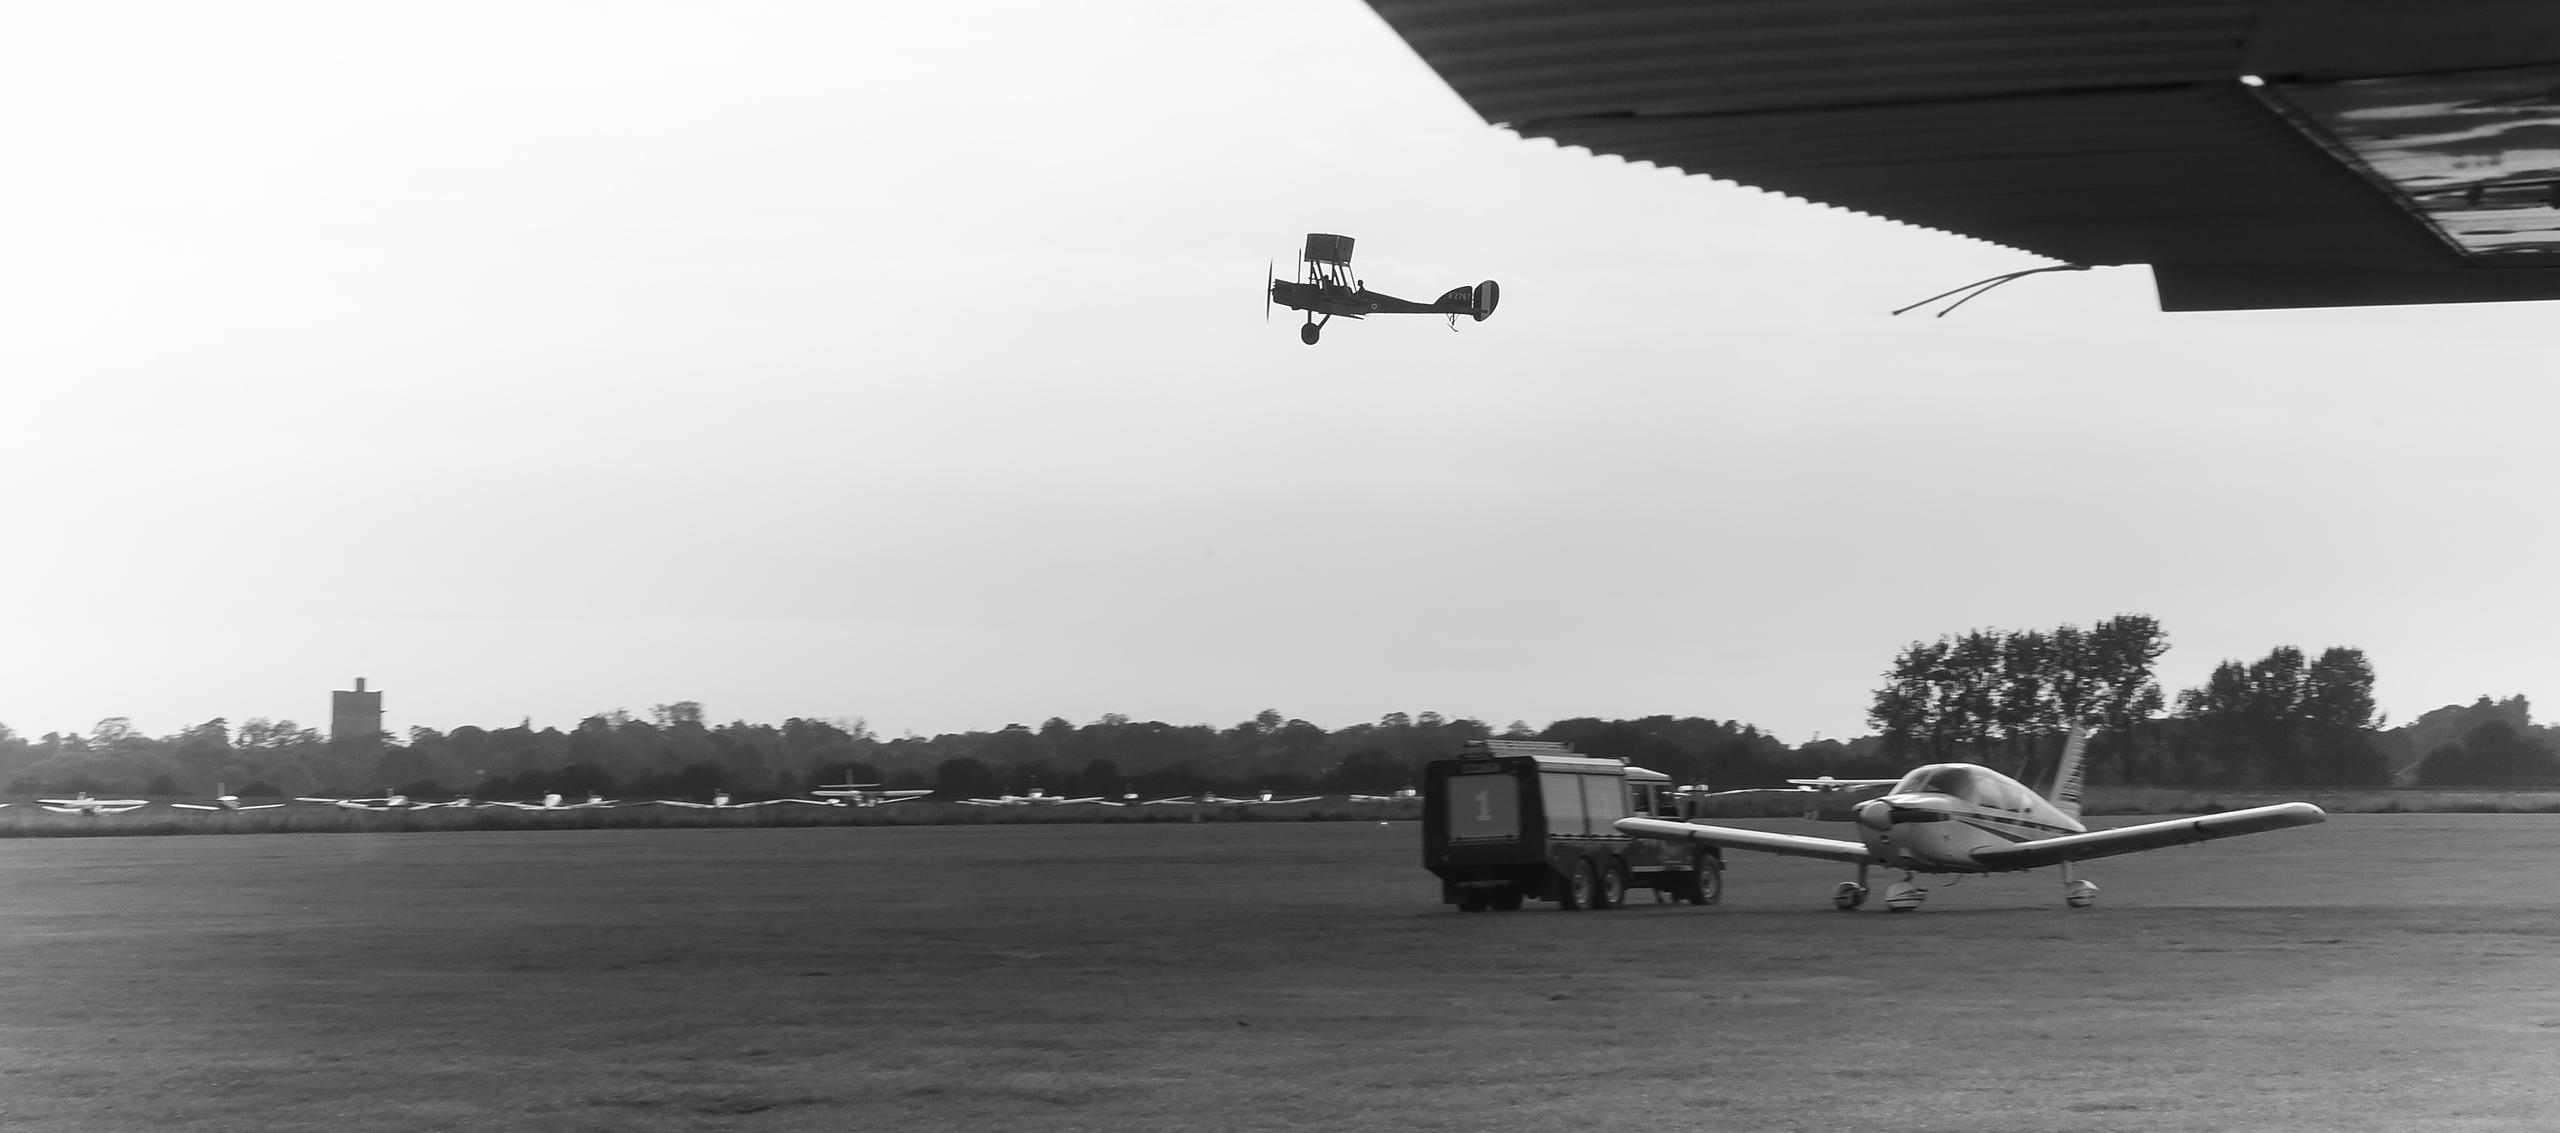 Antique Style Image of Bi-plane take-off at airfield